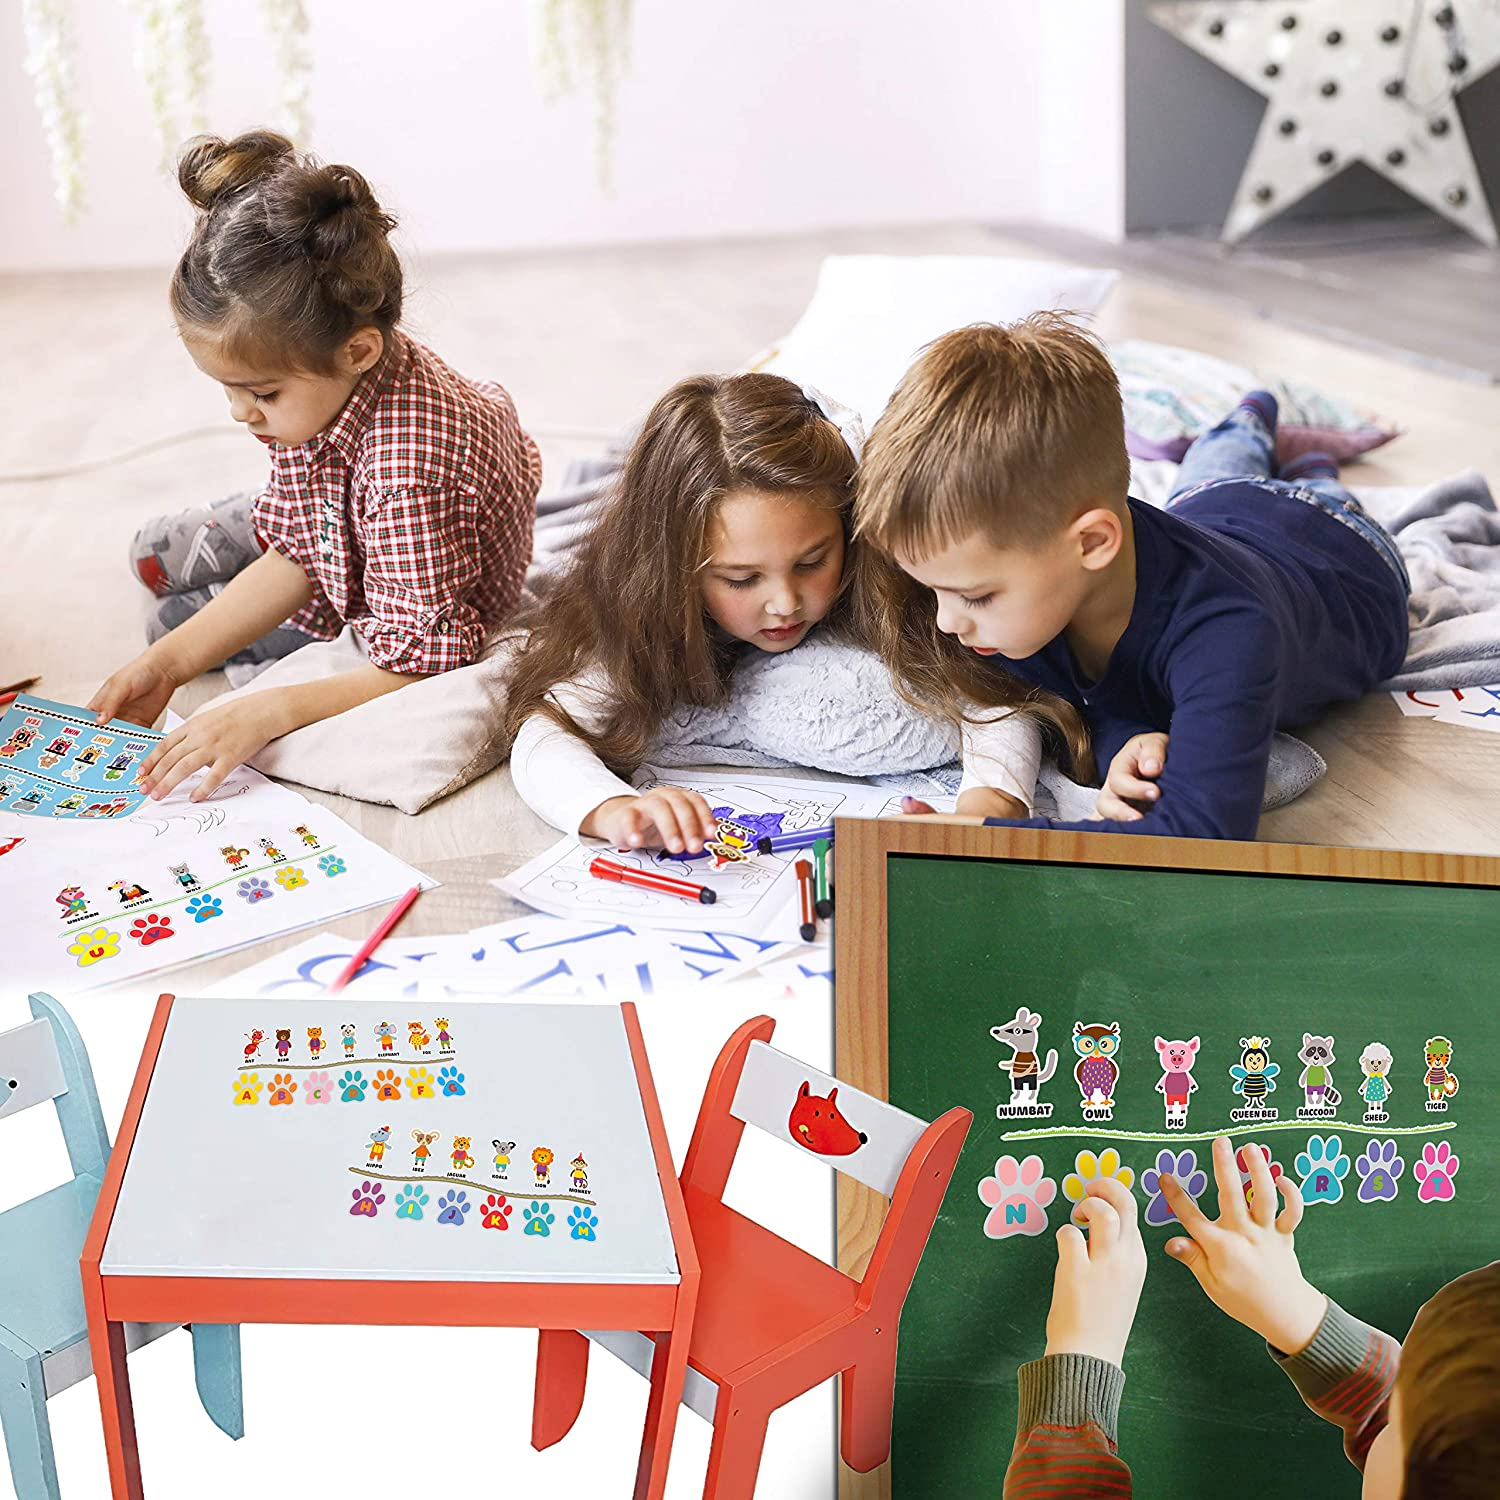 ABC Stickers for Kids Learning in Classroom Alphabet Letter for Kids Kindergarten HK STUDIO Cute Animal Alphabet Stickers Matching ABC Learning For Preschool Toddlers Educational Animal Stickers